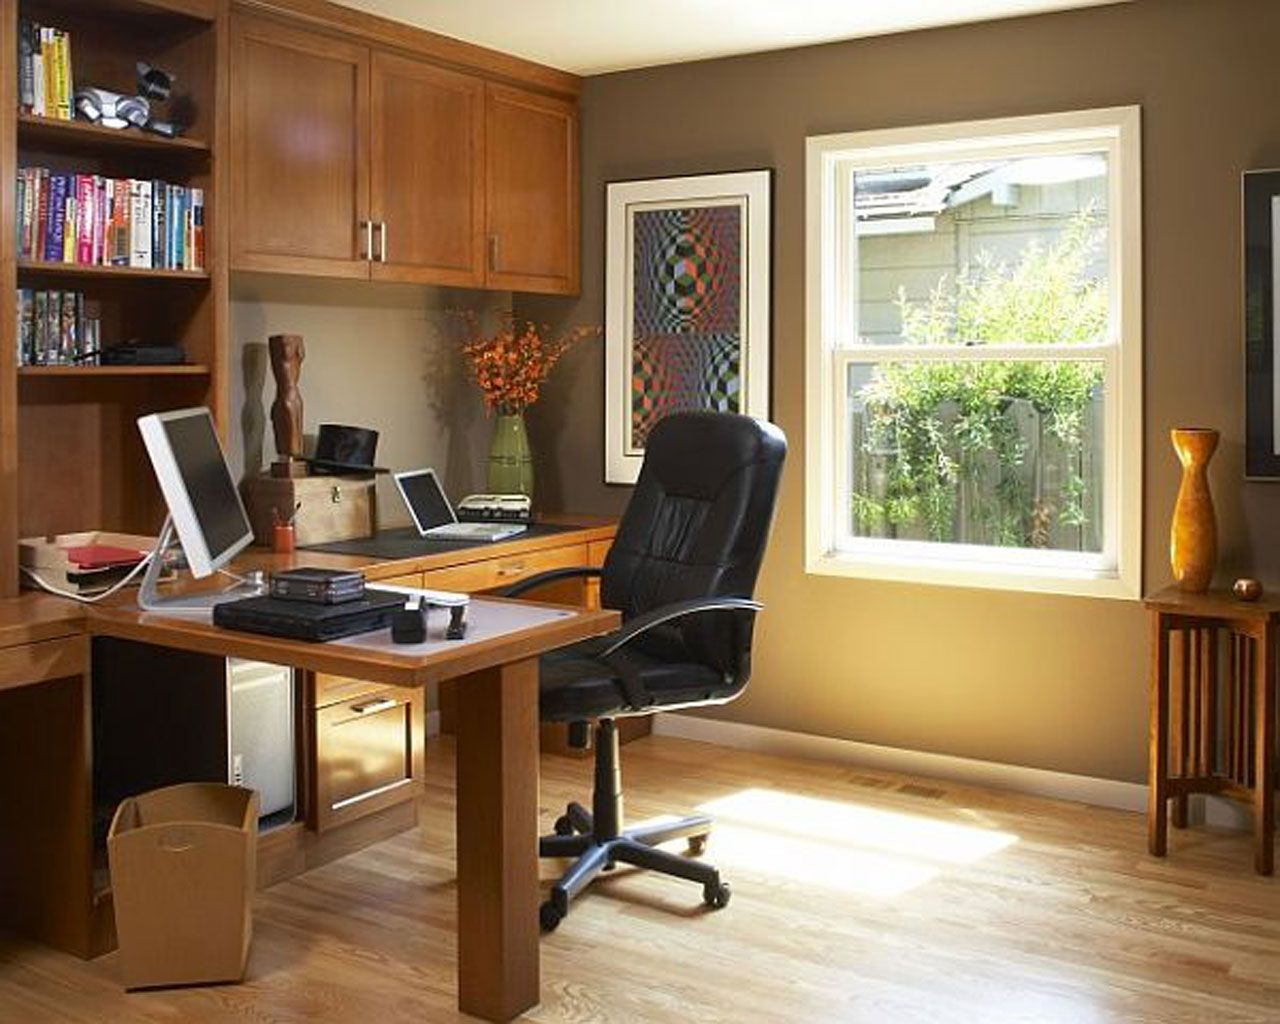 1000 images about home office on pinterest home office design office designs and l shaped office desk